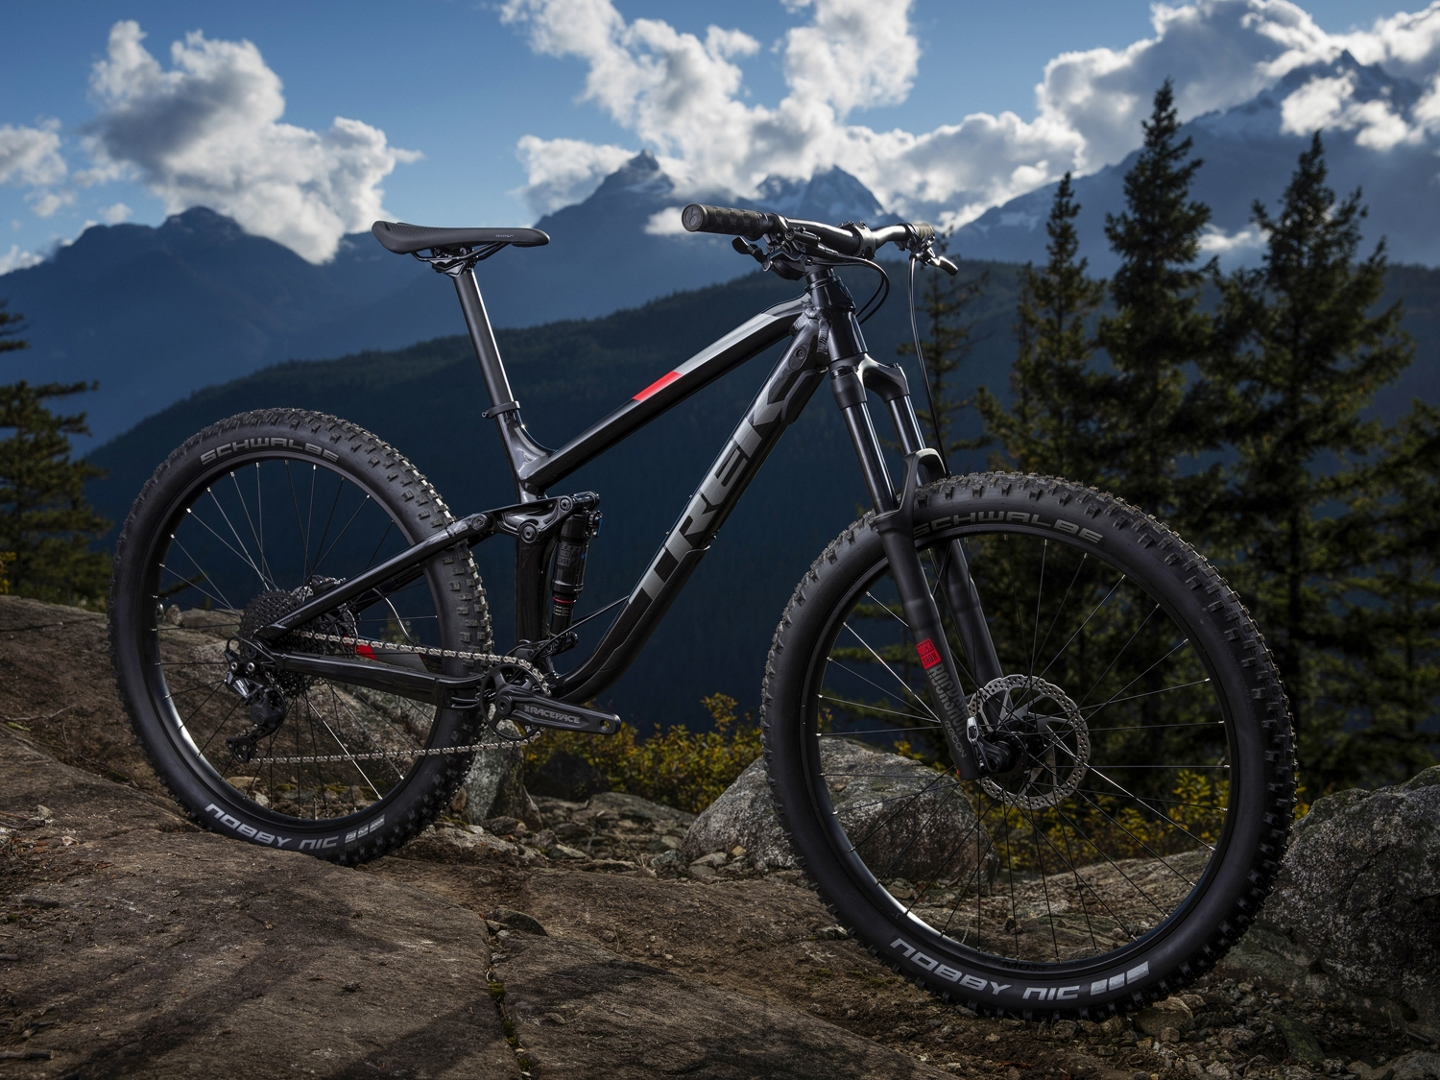 TREK Fuel EX 5 Plus -- $2199.99